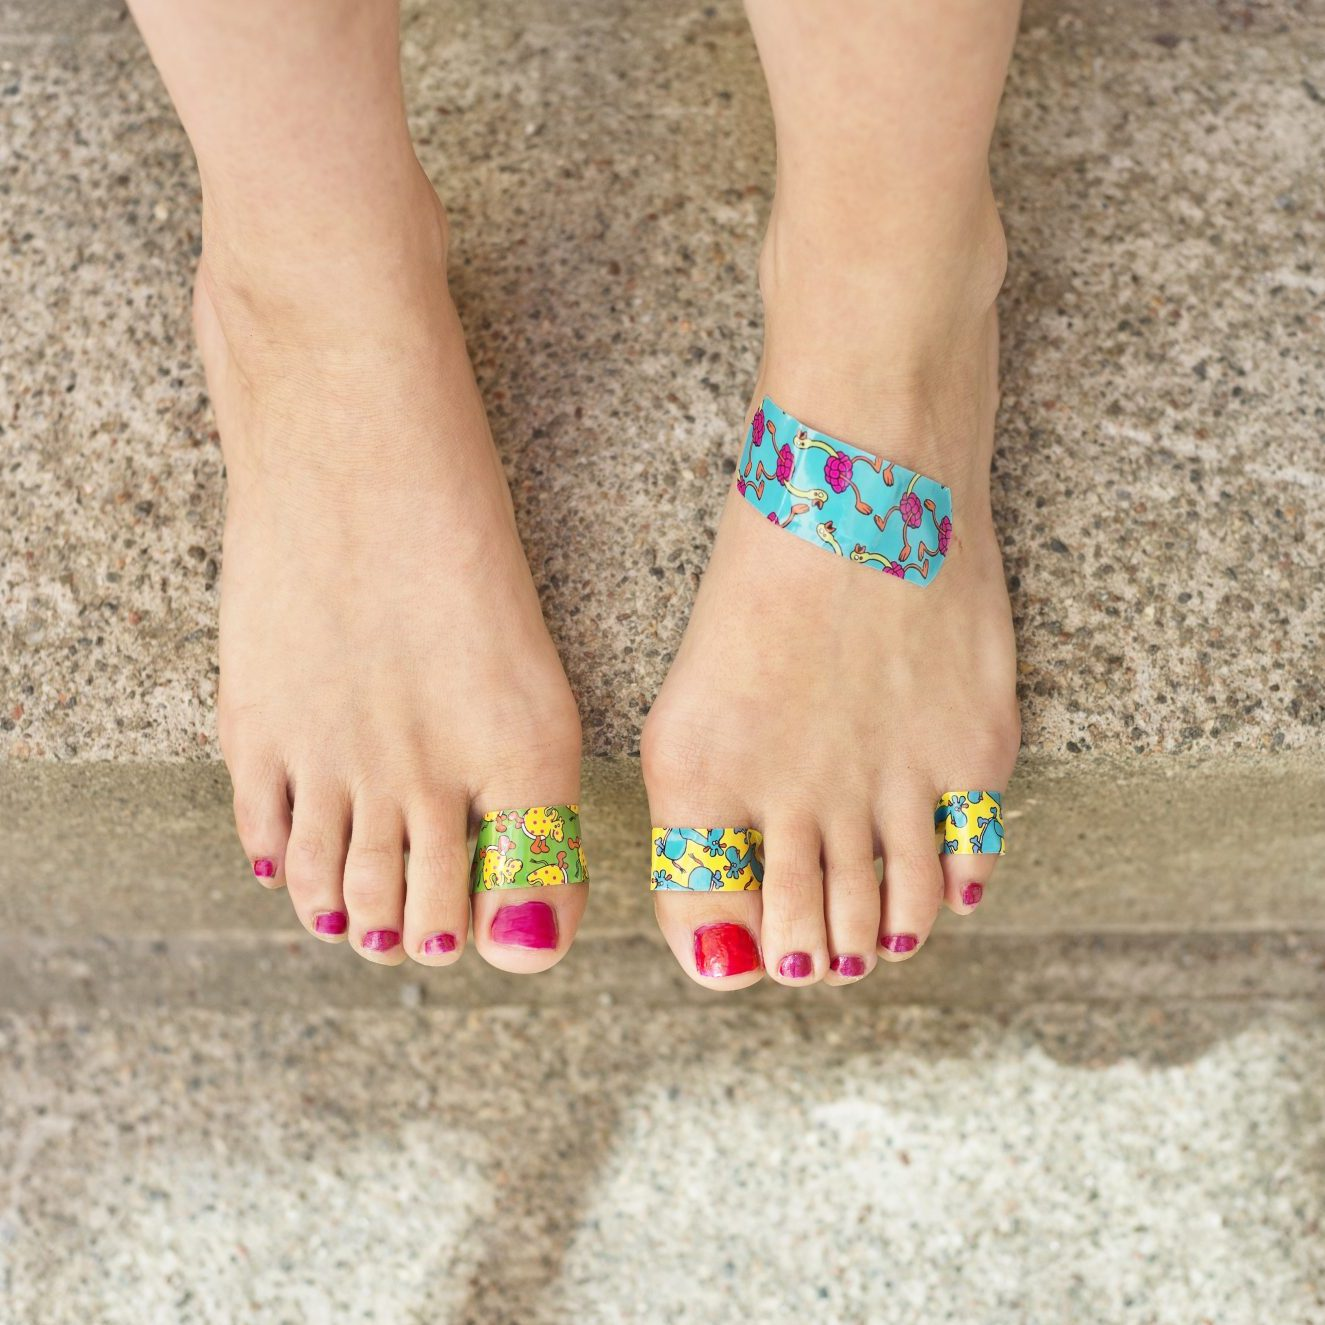 woman-with-blisters-and-bandaids-on-feet-from-running-in-bad-shoes